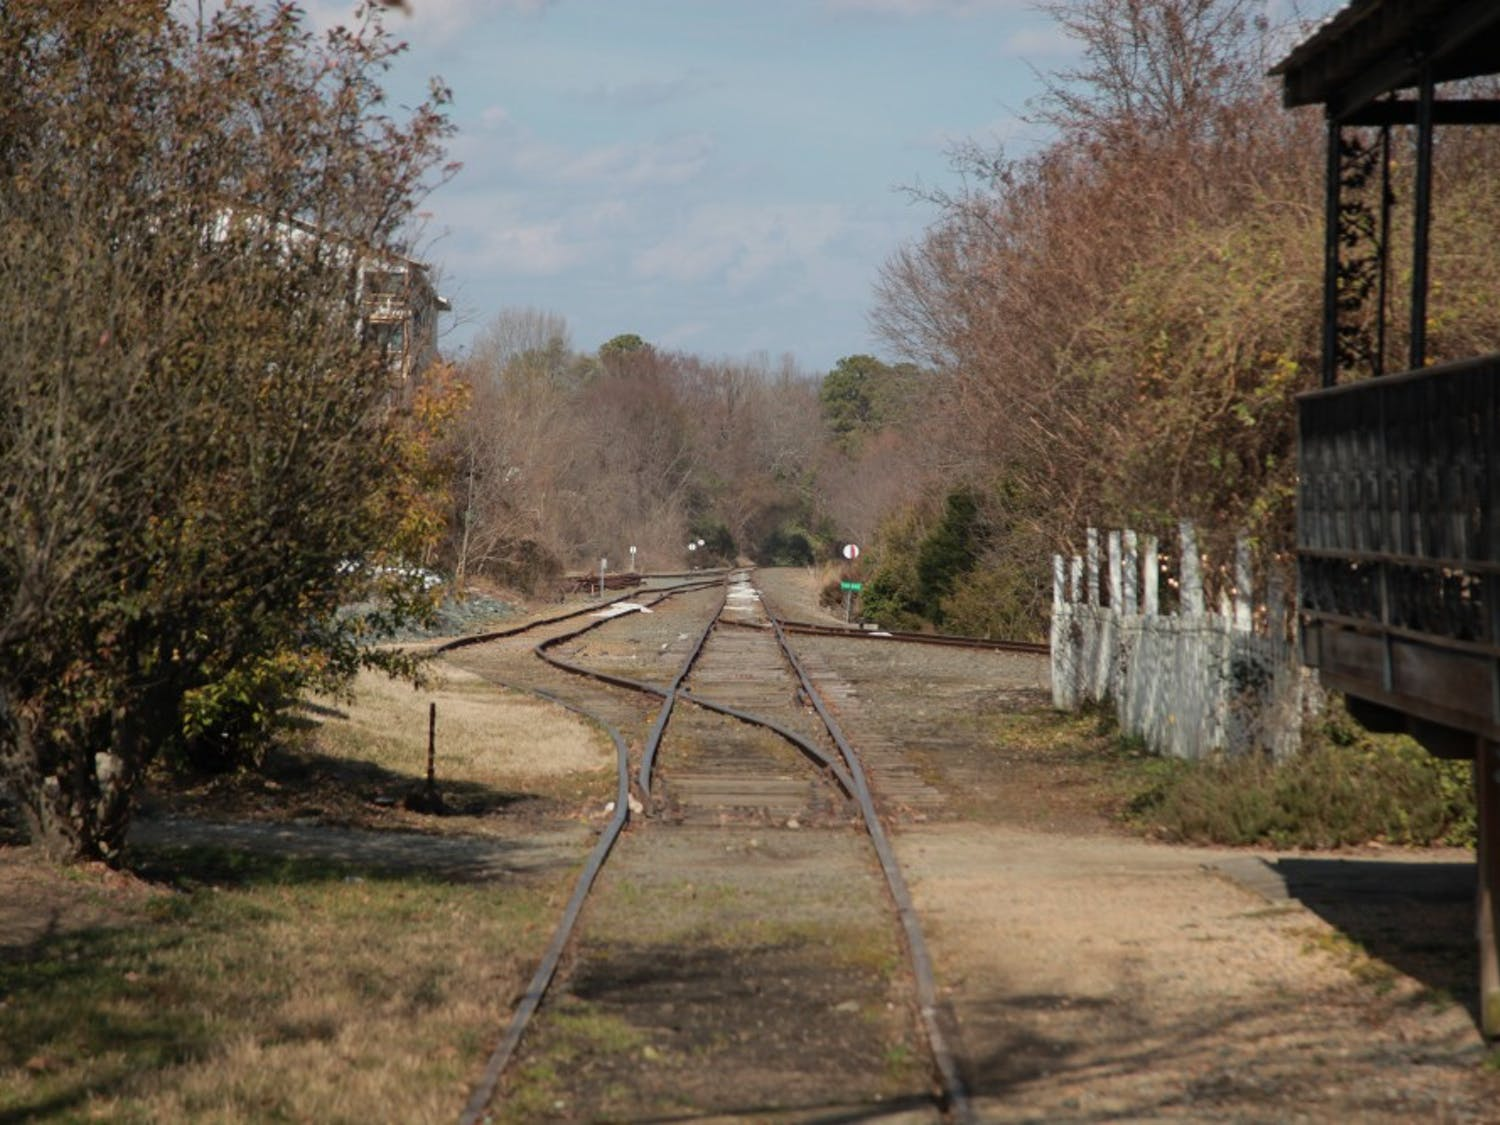 Sometimes you can hear the train making its way through Carrboro--even if you can't see it, as was the case on Wednesday afternoon.